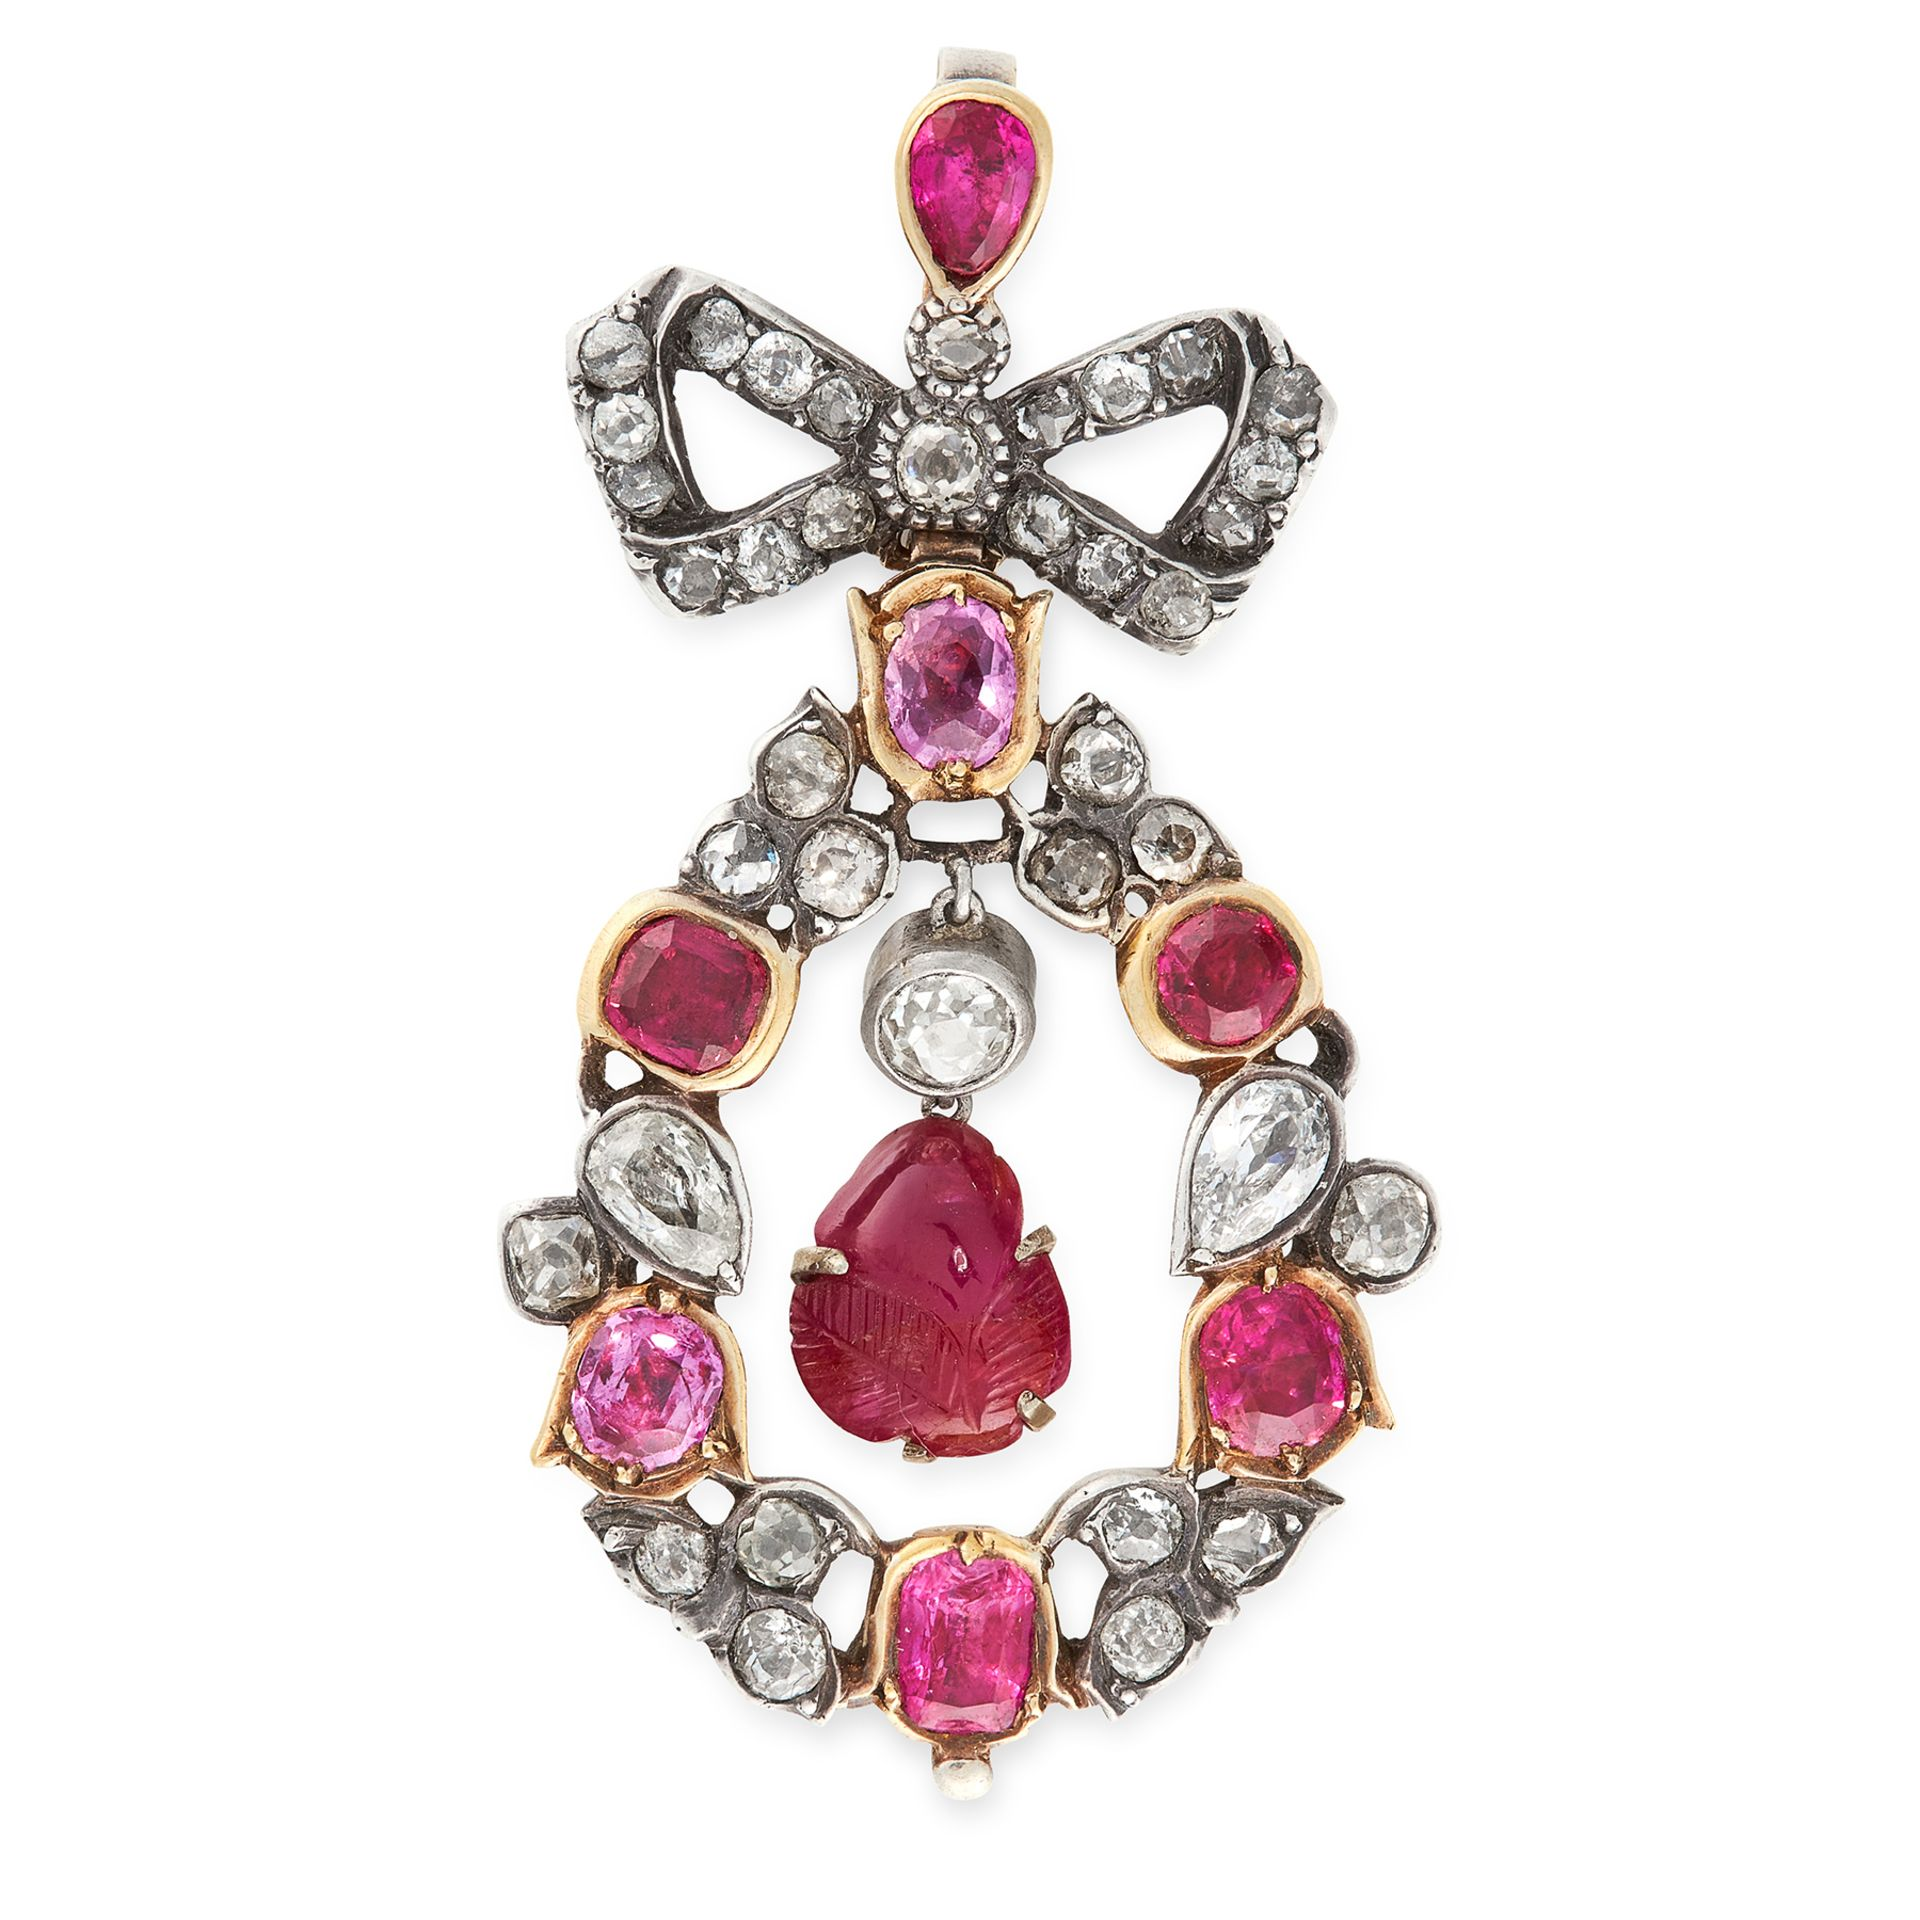 AN ANTIQUE RUBY AND DIAMOND PENDANT, EARLY 19TH CENTURY in yellow gold and silver, set at the centre